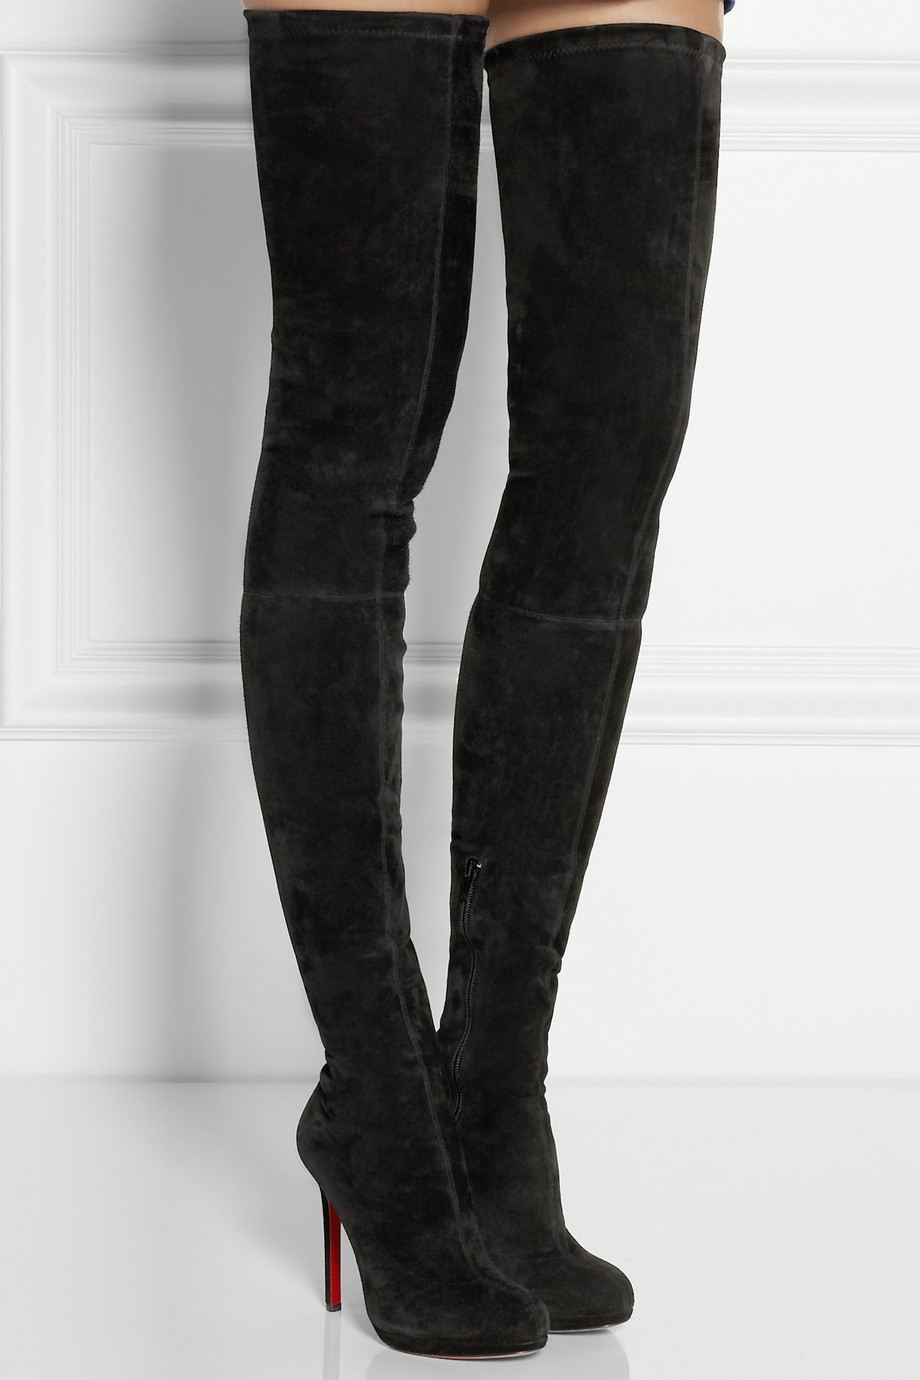 competitive price 0b00b 83438 Christian Louboutin Black Louise Xi 120 Stretch-Suede Over-The-Knee Boots